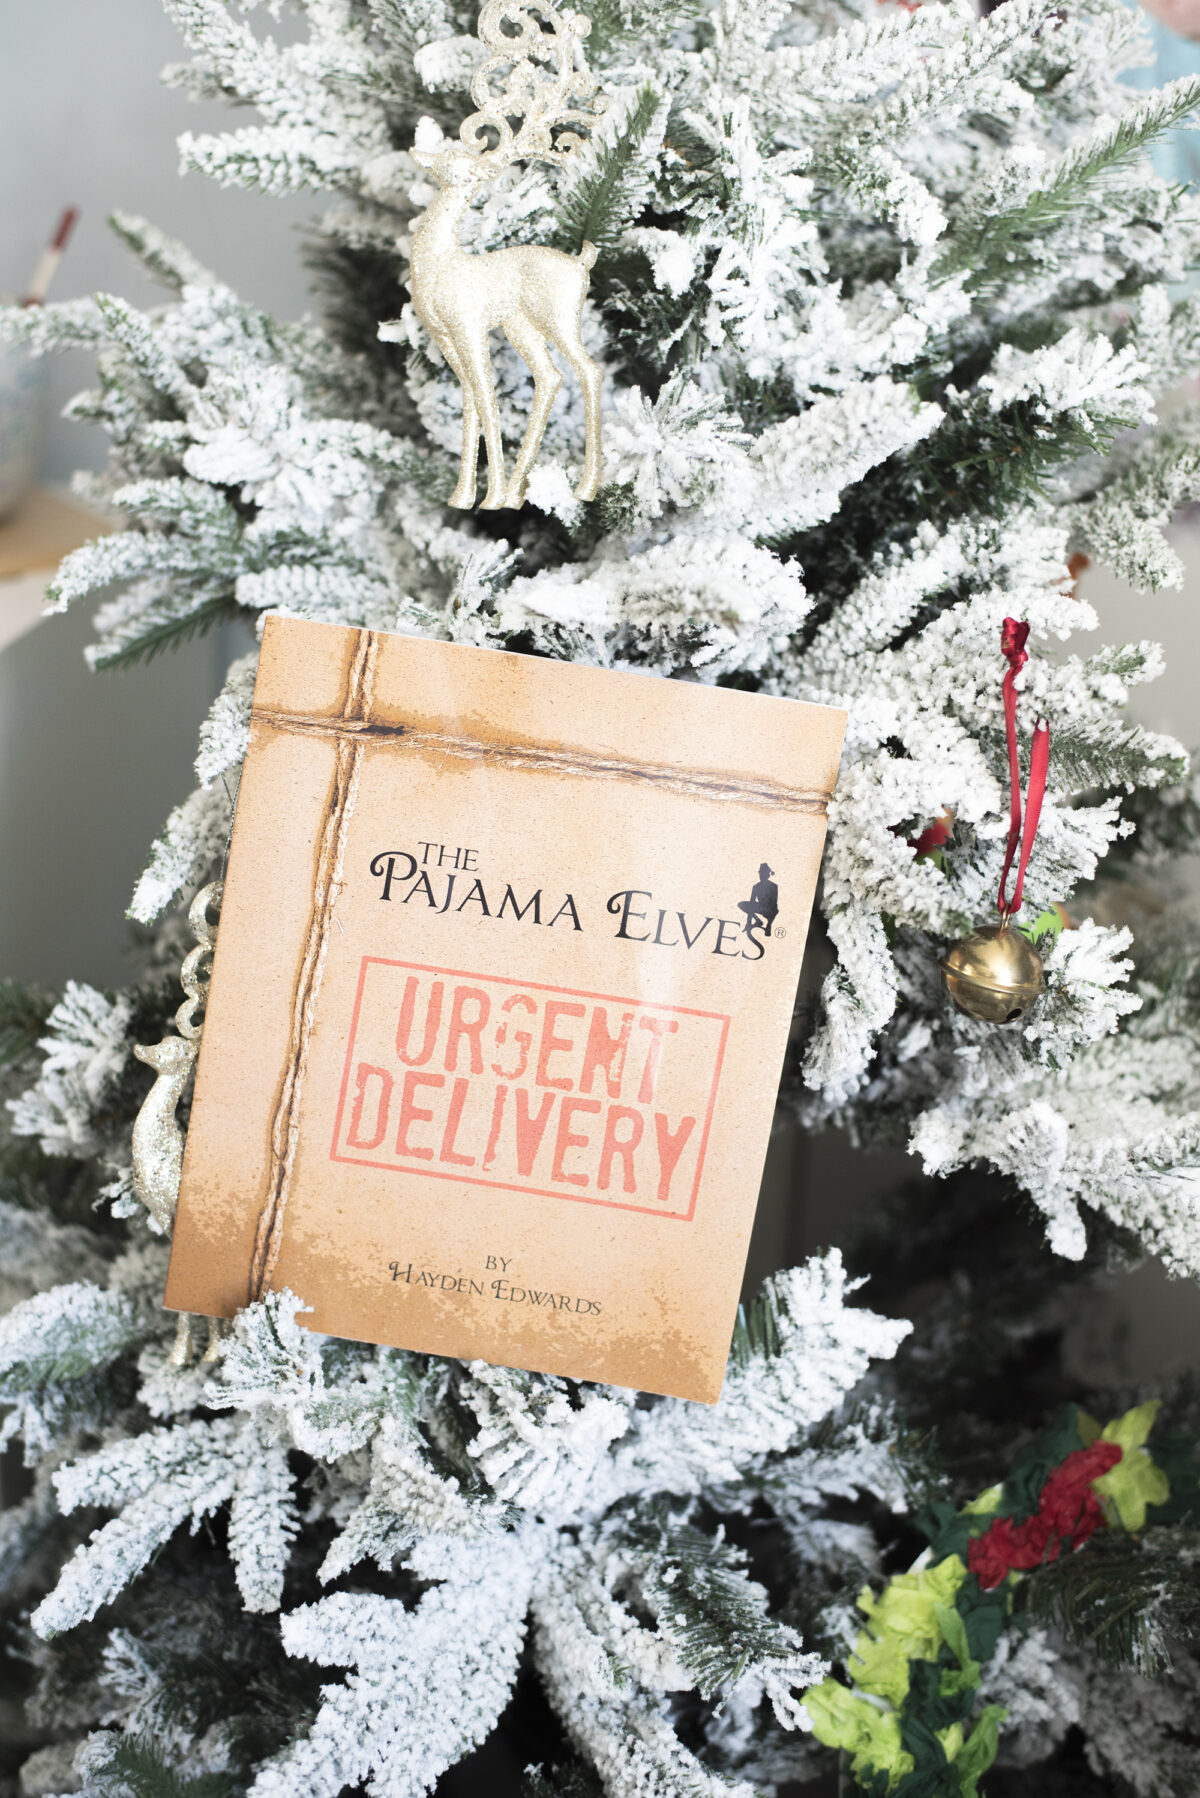 Image shows the Pyjama elves [pajama elves] book by hayden edwards in the branches of a snow covered christmas tree. Image by keep up with the jones family.